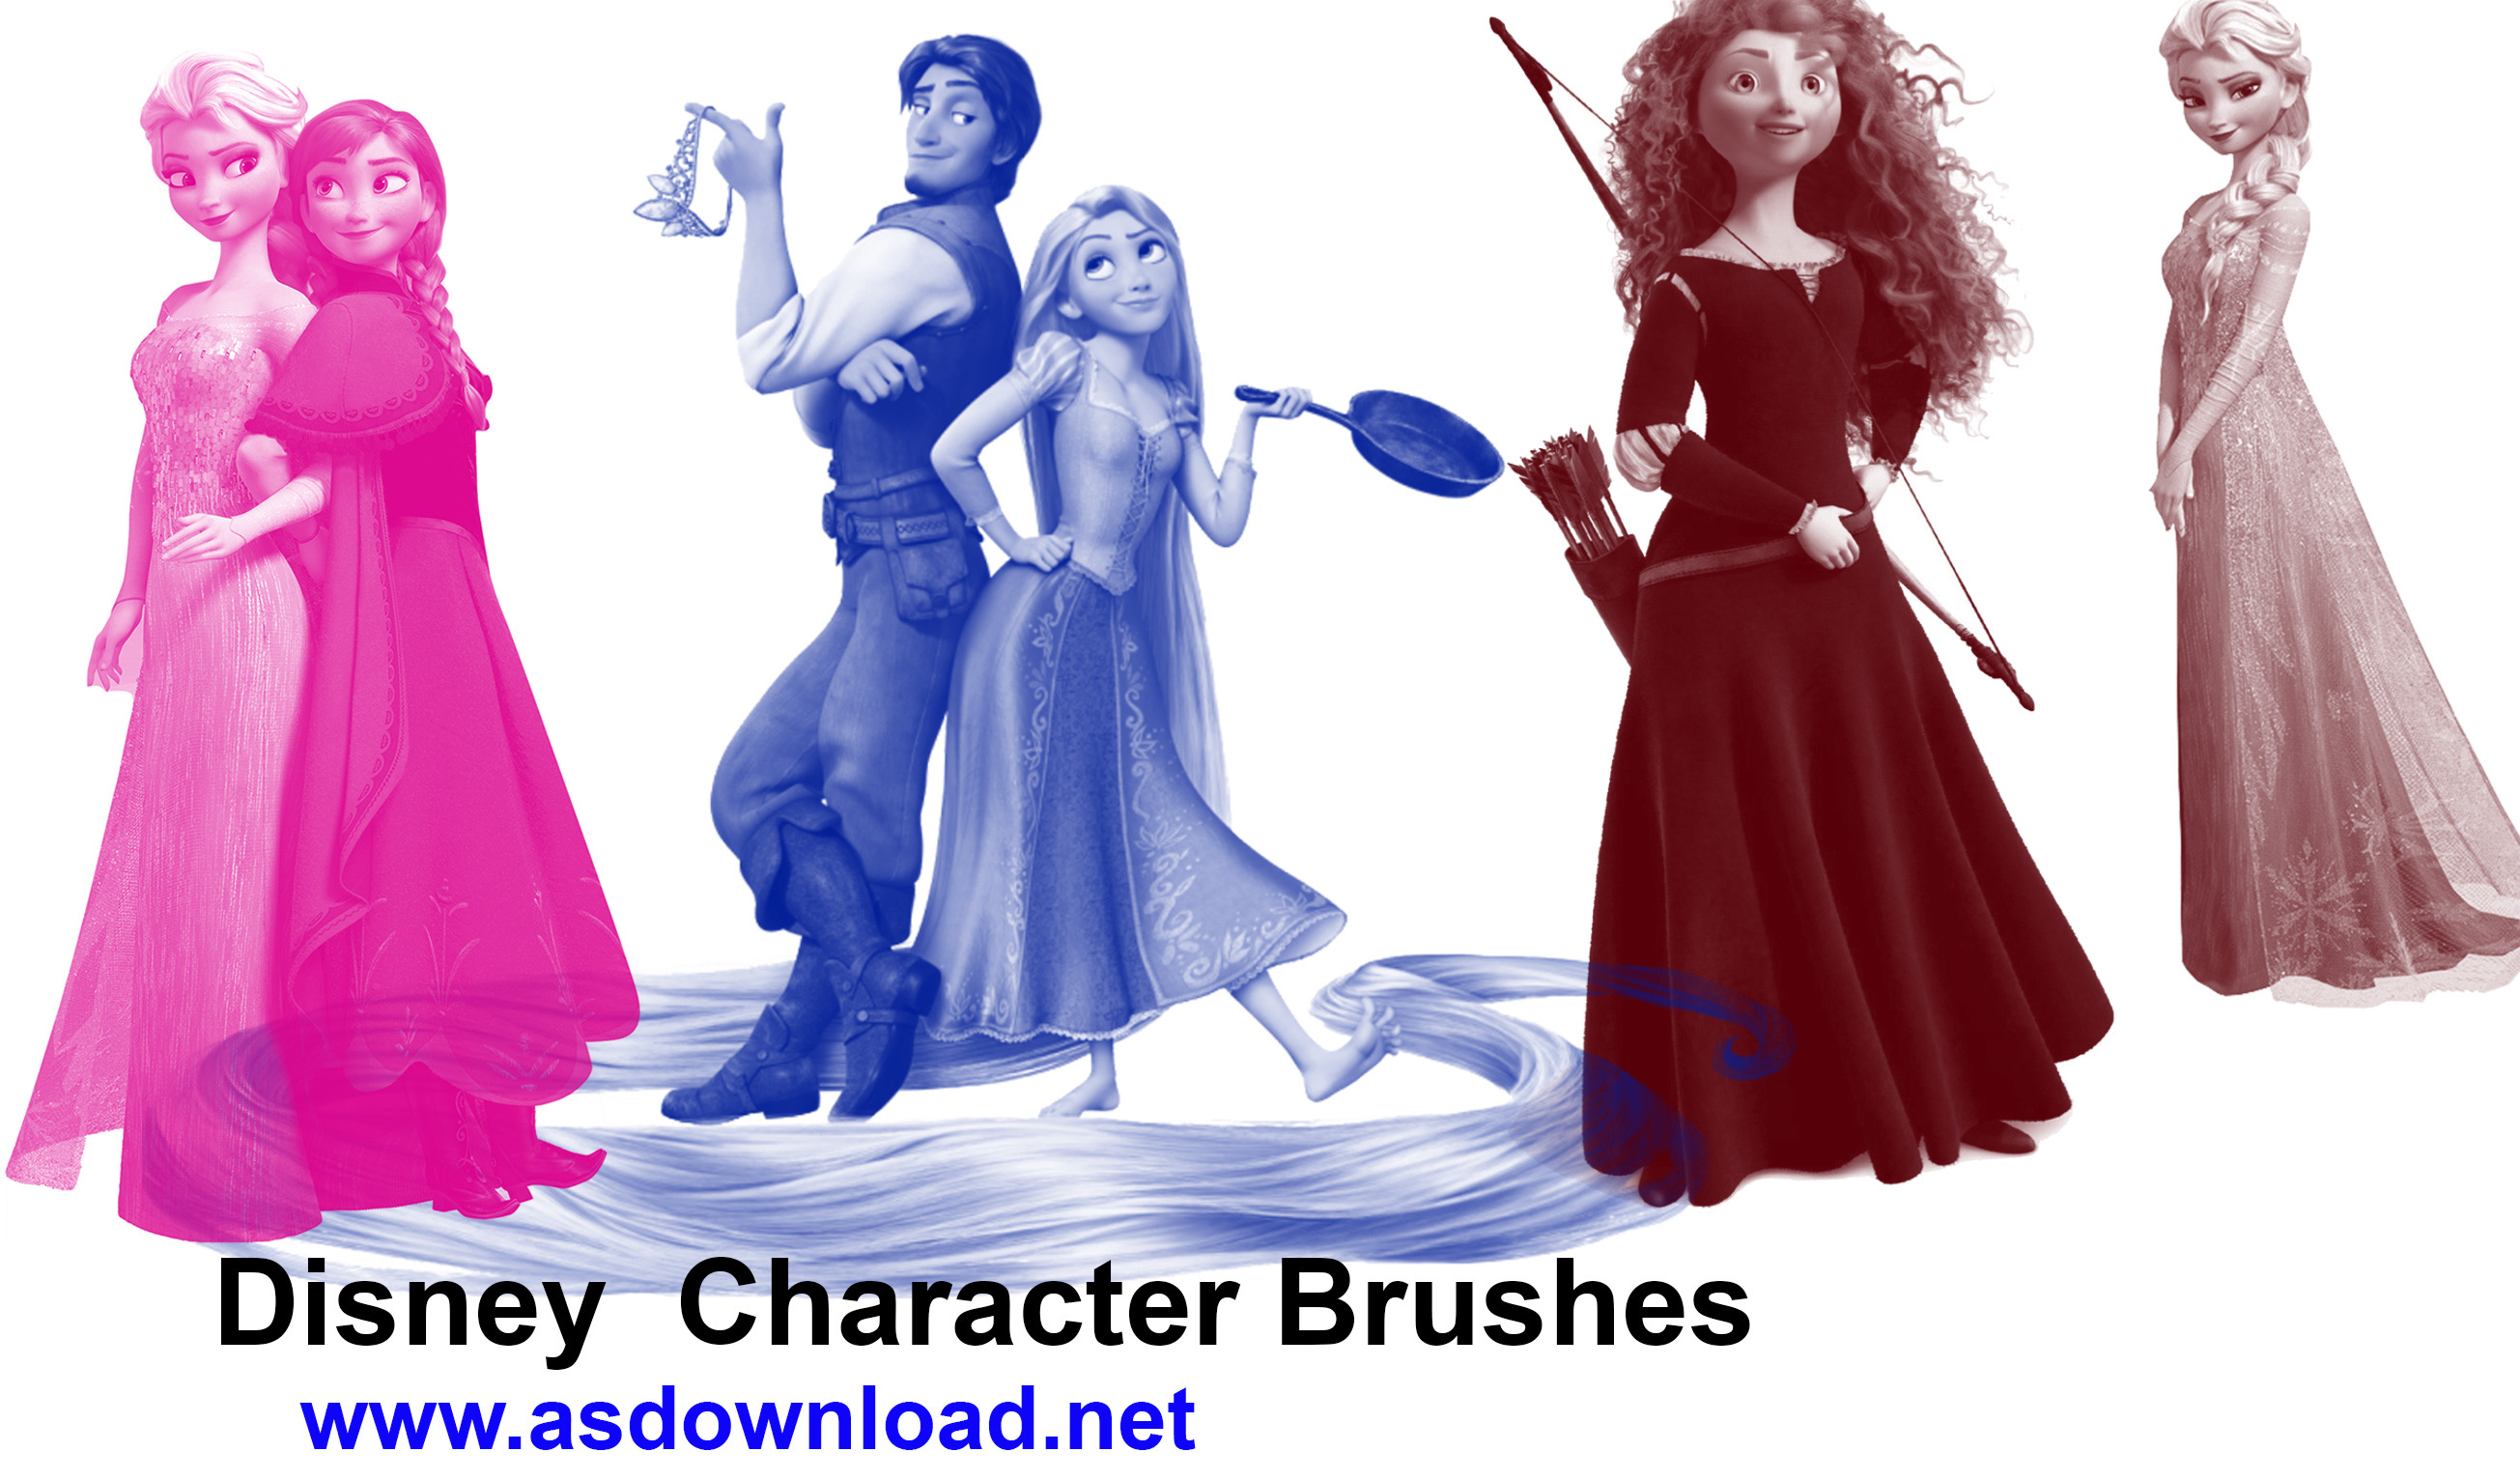 Disney Character Brushes